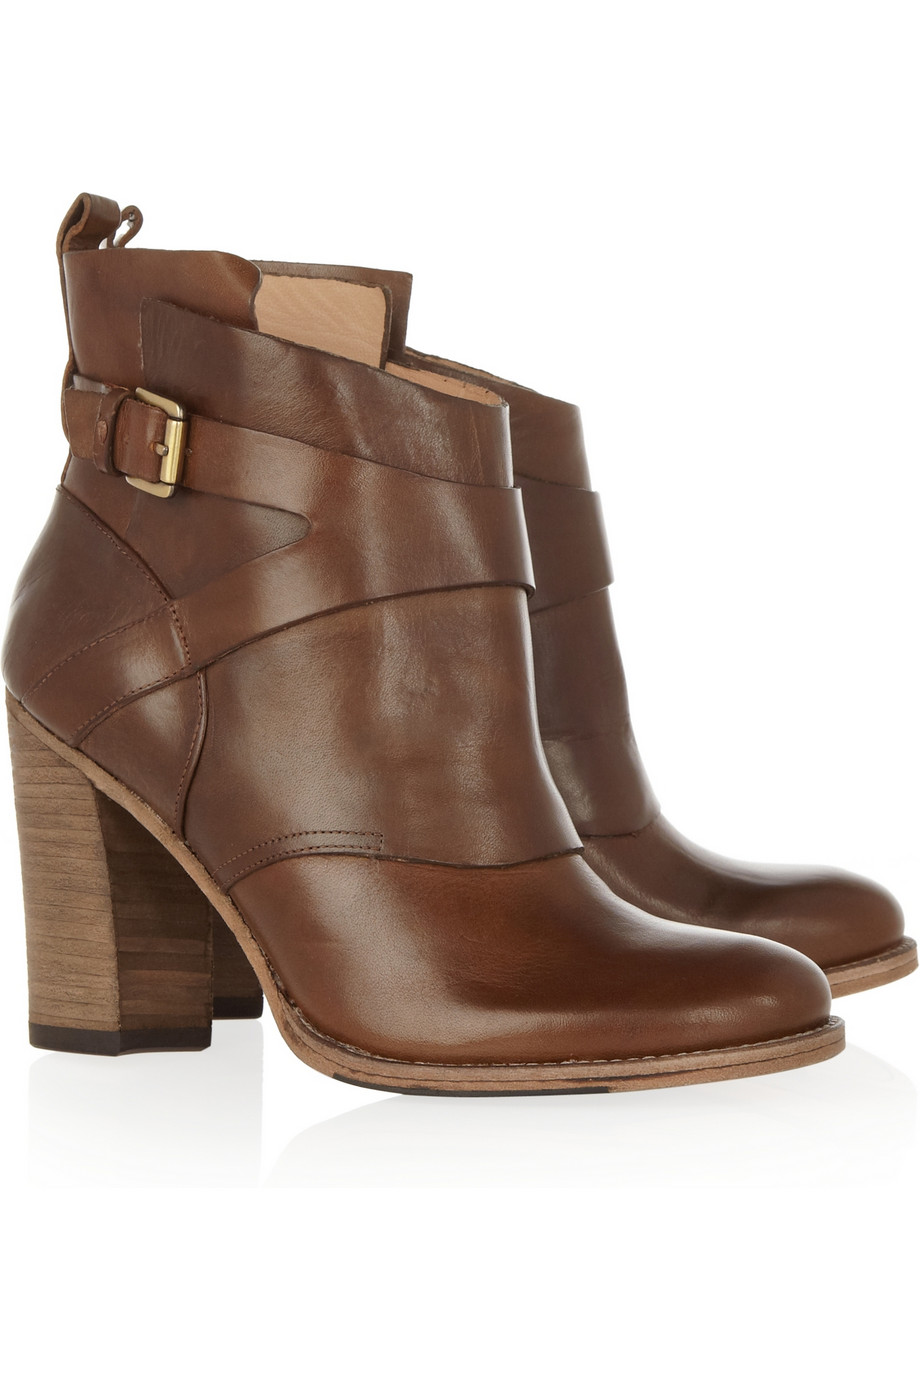 Belle by sigerson morrison Leather Ankle Boots in Brown | Lyst